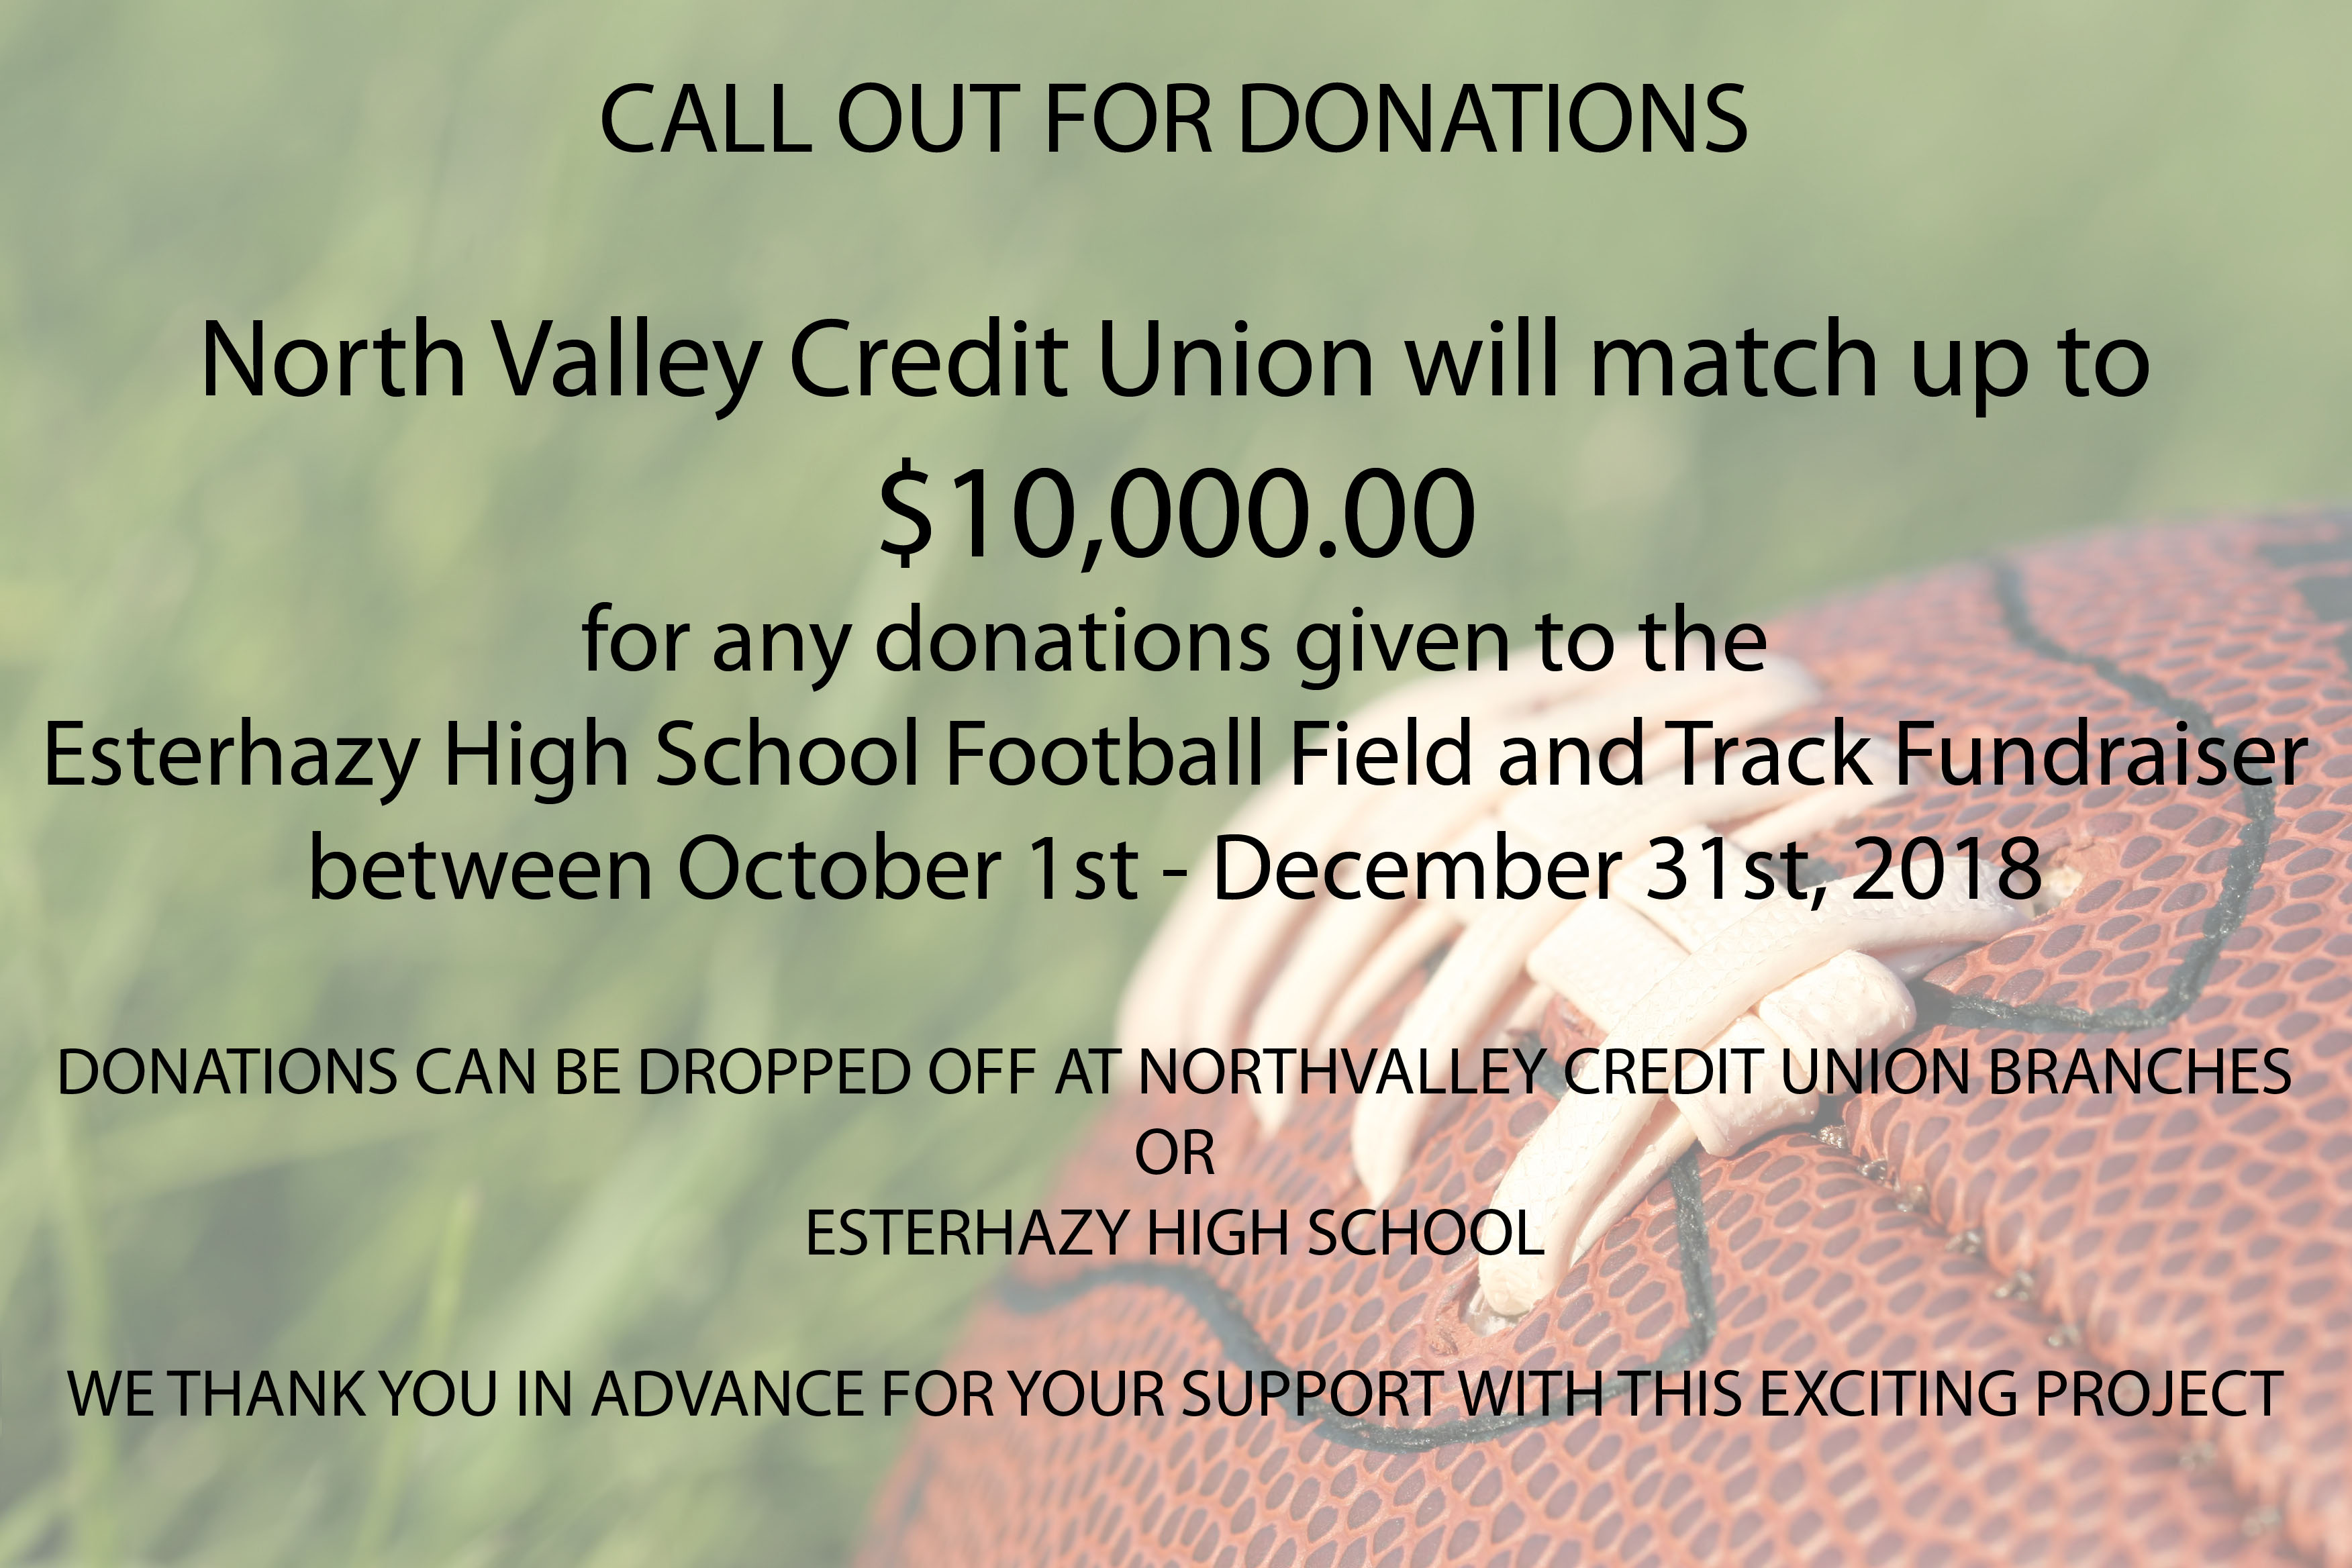 EHS football and track fundraiser